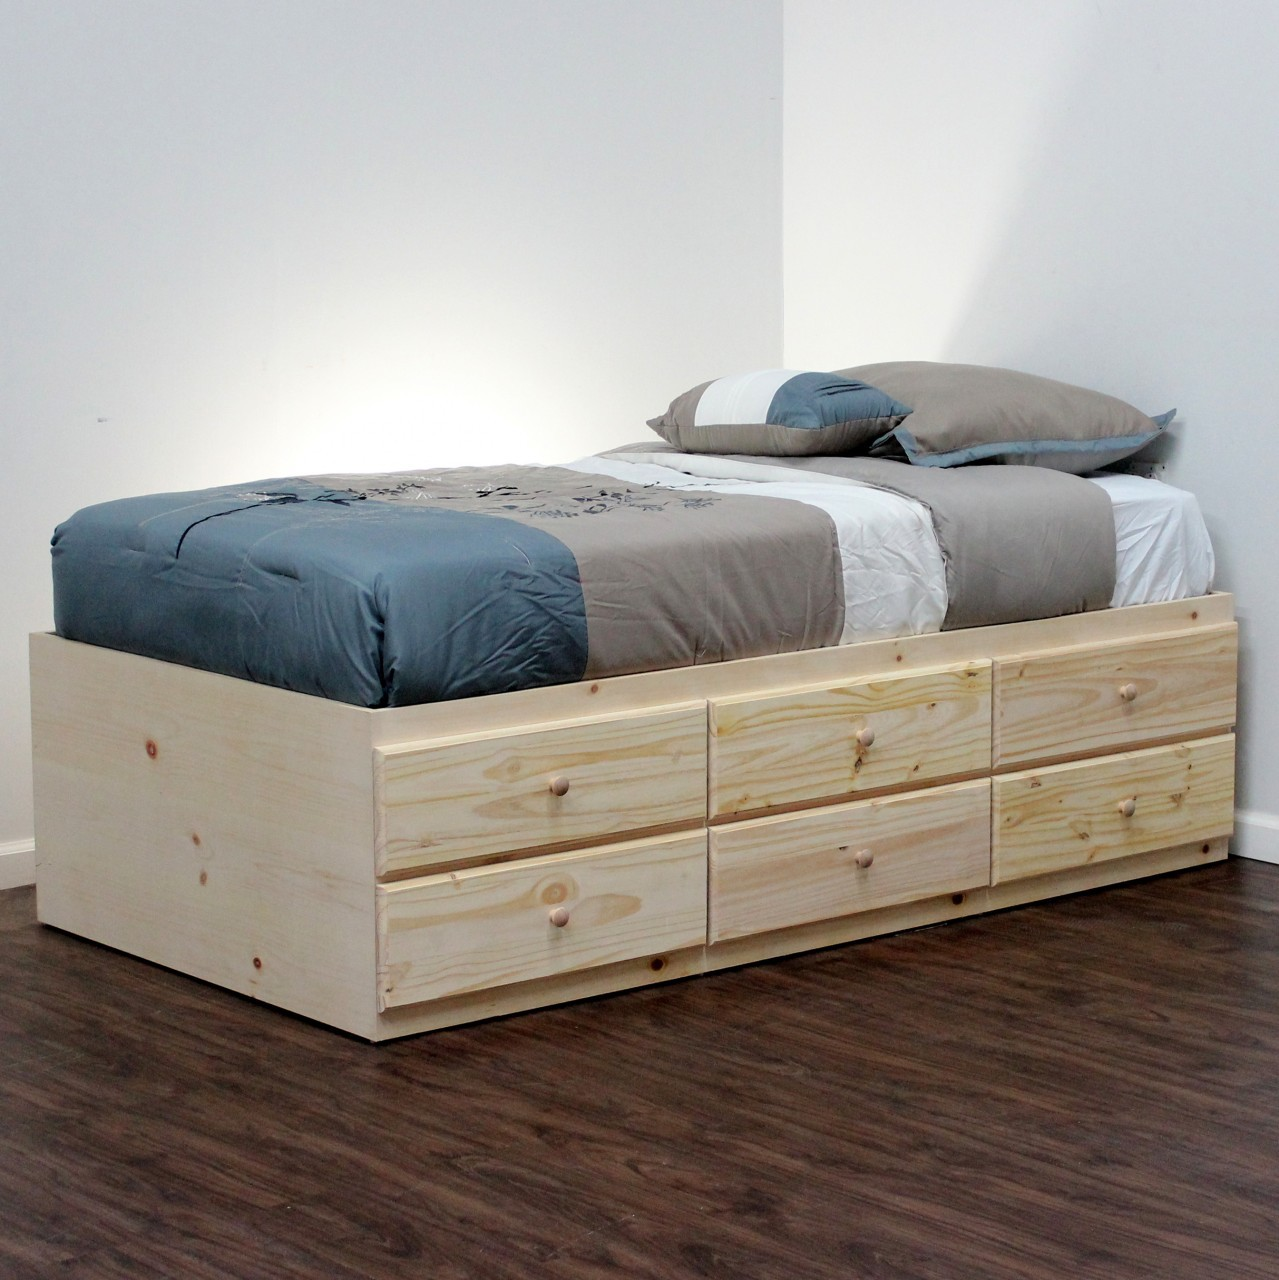 Unique Wooden Extra Long Twin Daybed With Storage And Cool Striped Bed  Design - Amazing Extra Long Twin Daybed HomesFeed